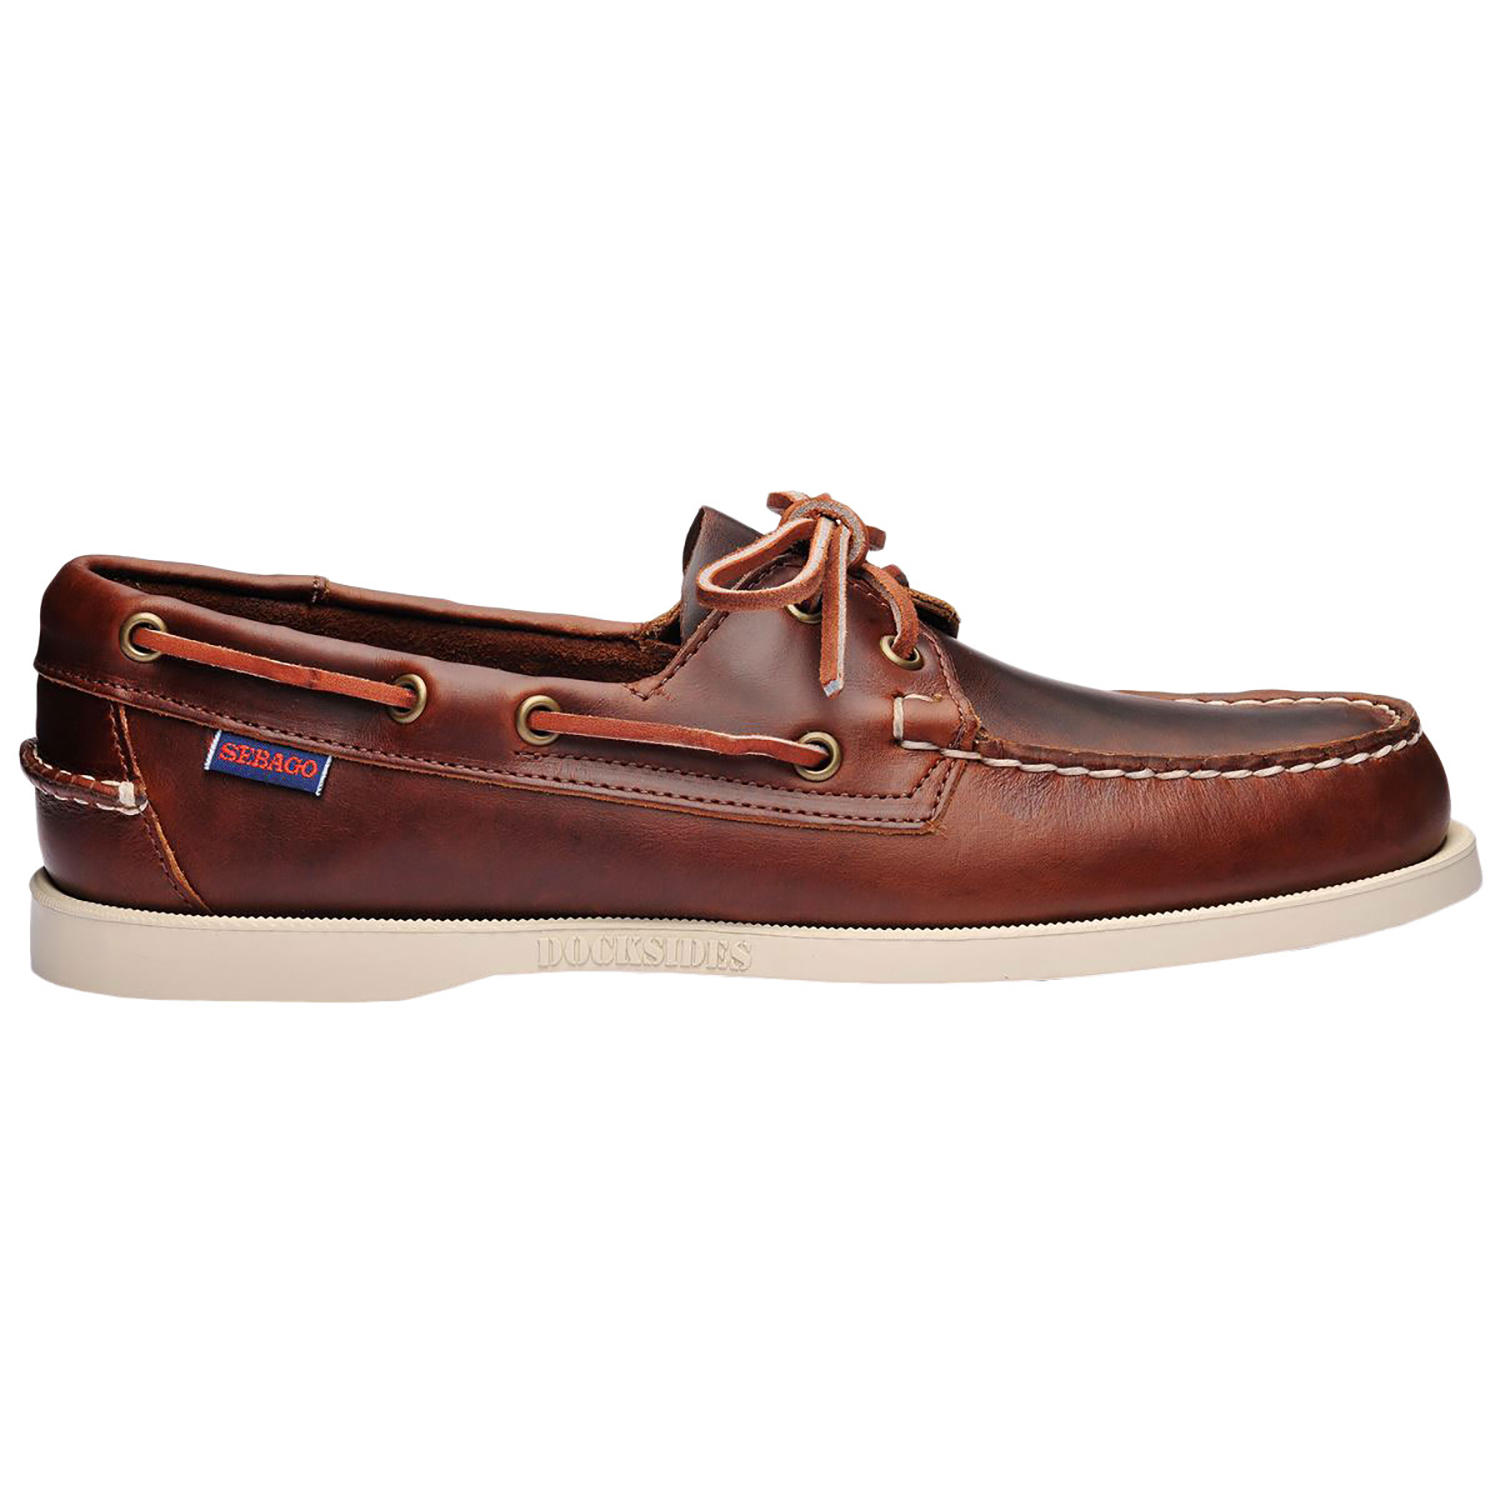 Sebago available from Blackleaf